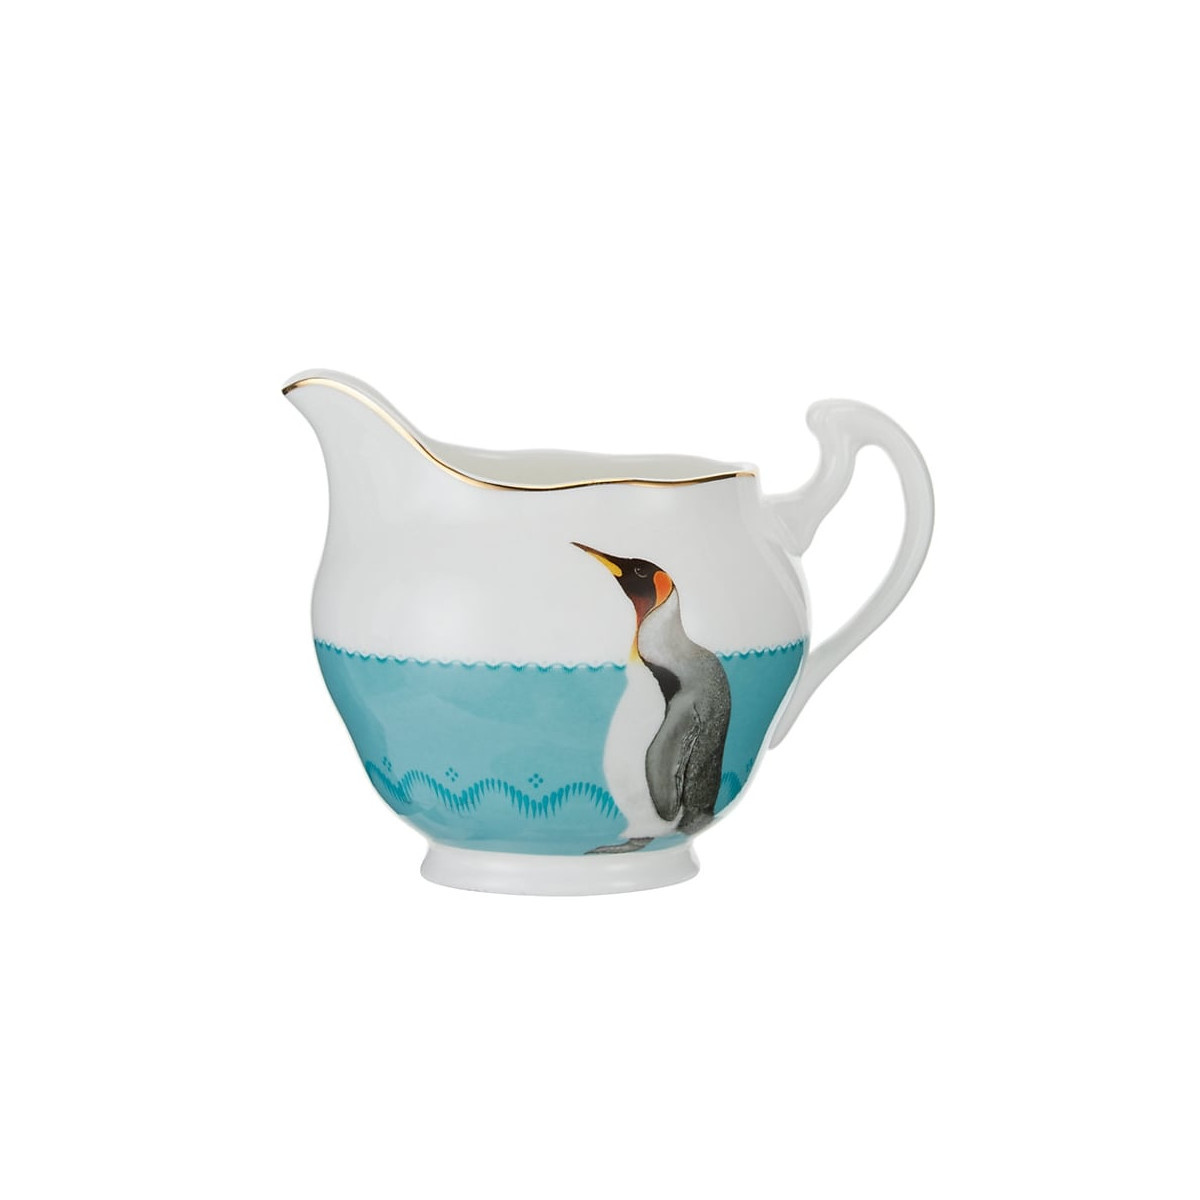 Yvonne Ellen London Yvonne Ellen - Carnival Animal  - Milk Jug - Penguin - Bone China Porcelaine